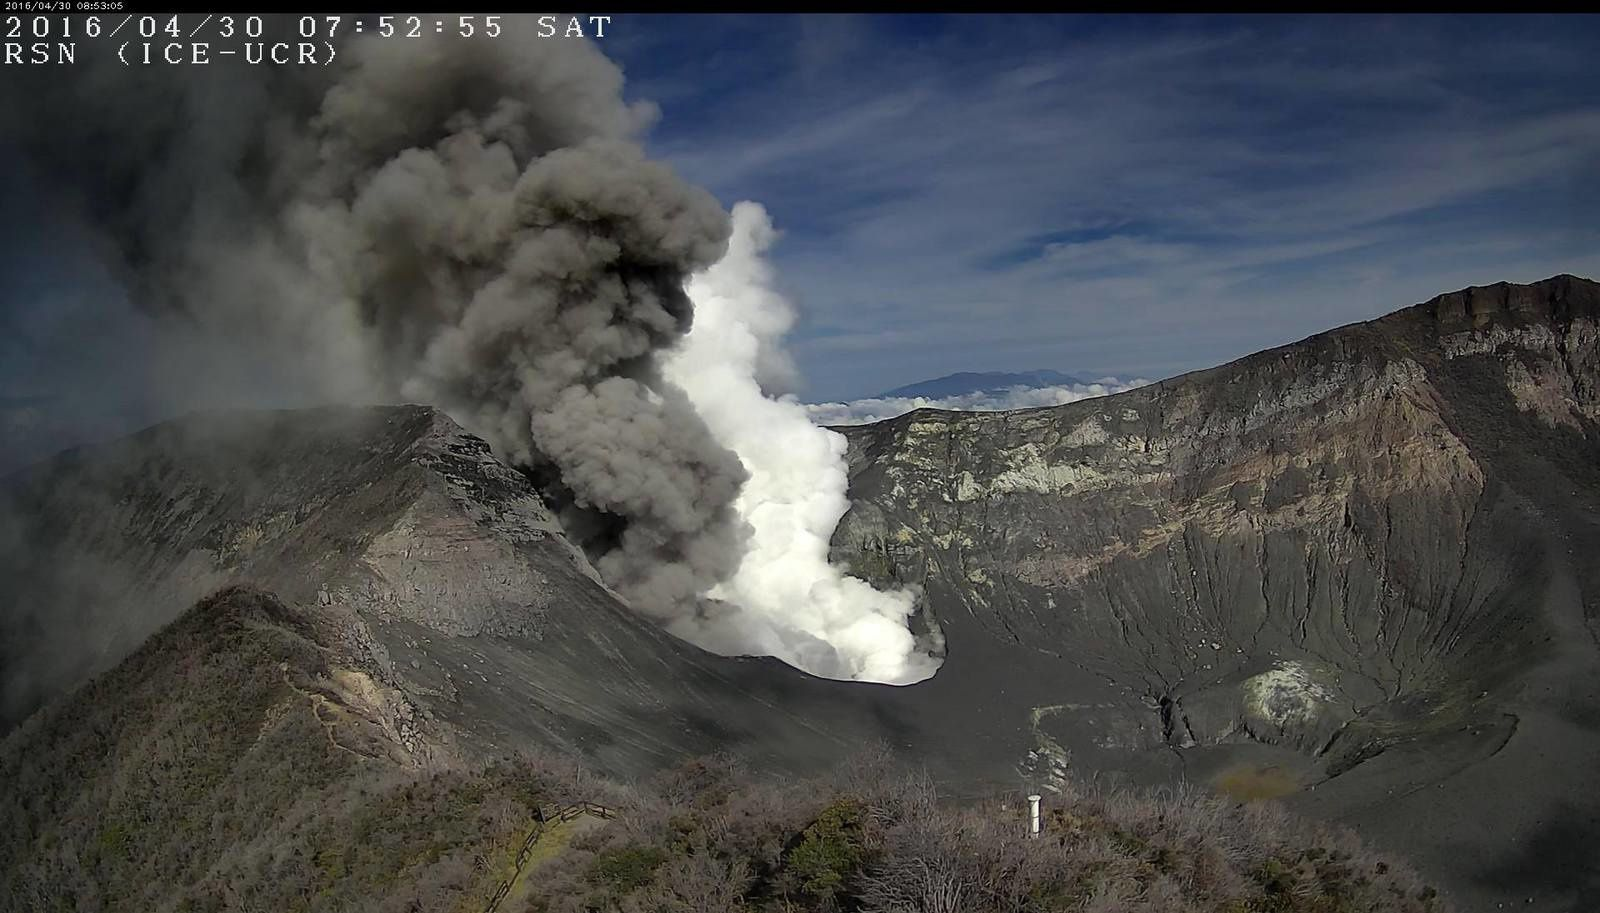 Turrialba - émissions du 30.04.2016 / 7h52 - webcam RSN